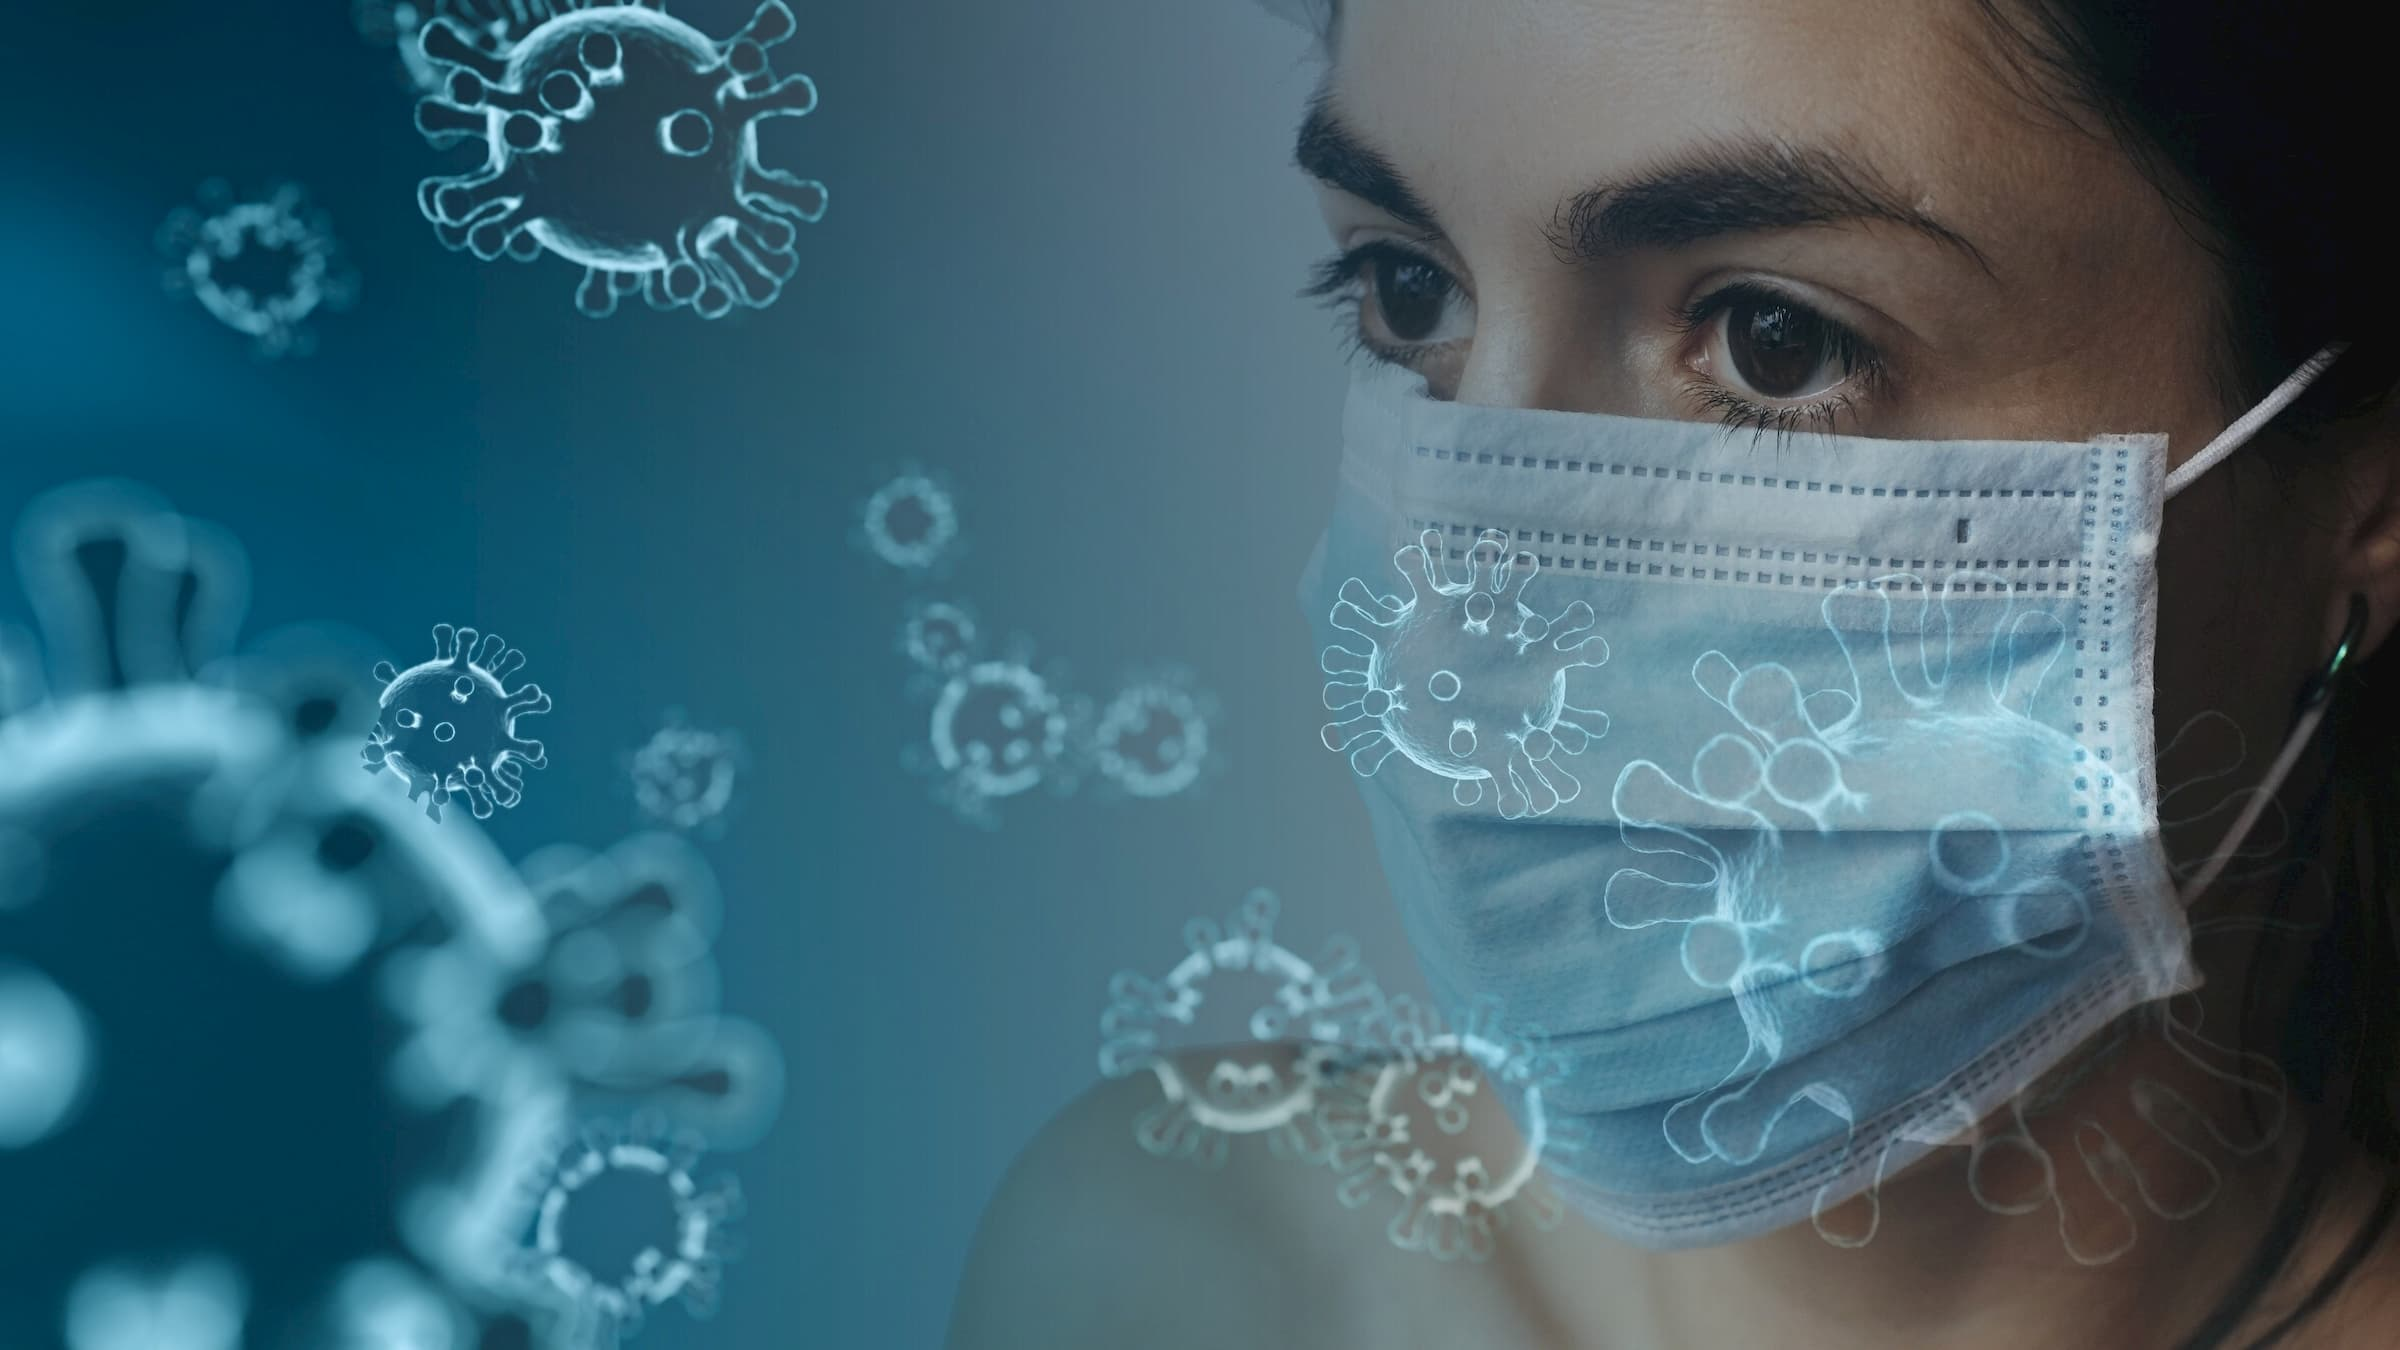 COVID-19 coronavirus background with a woman in a mask staring at virus